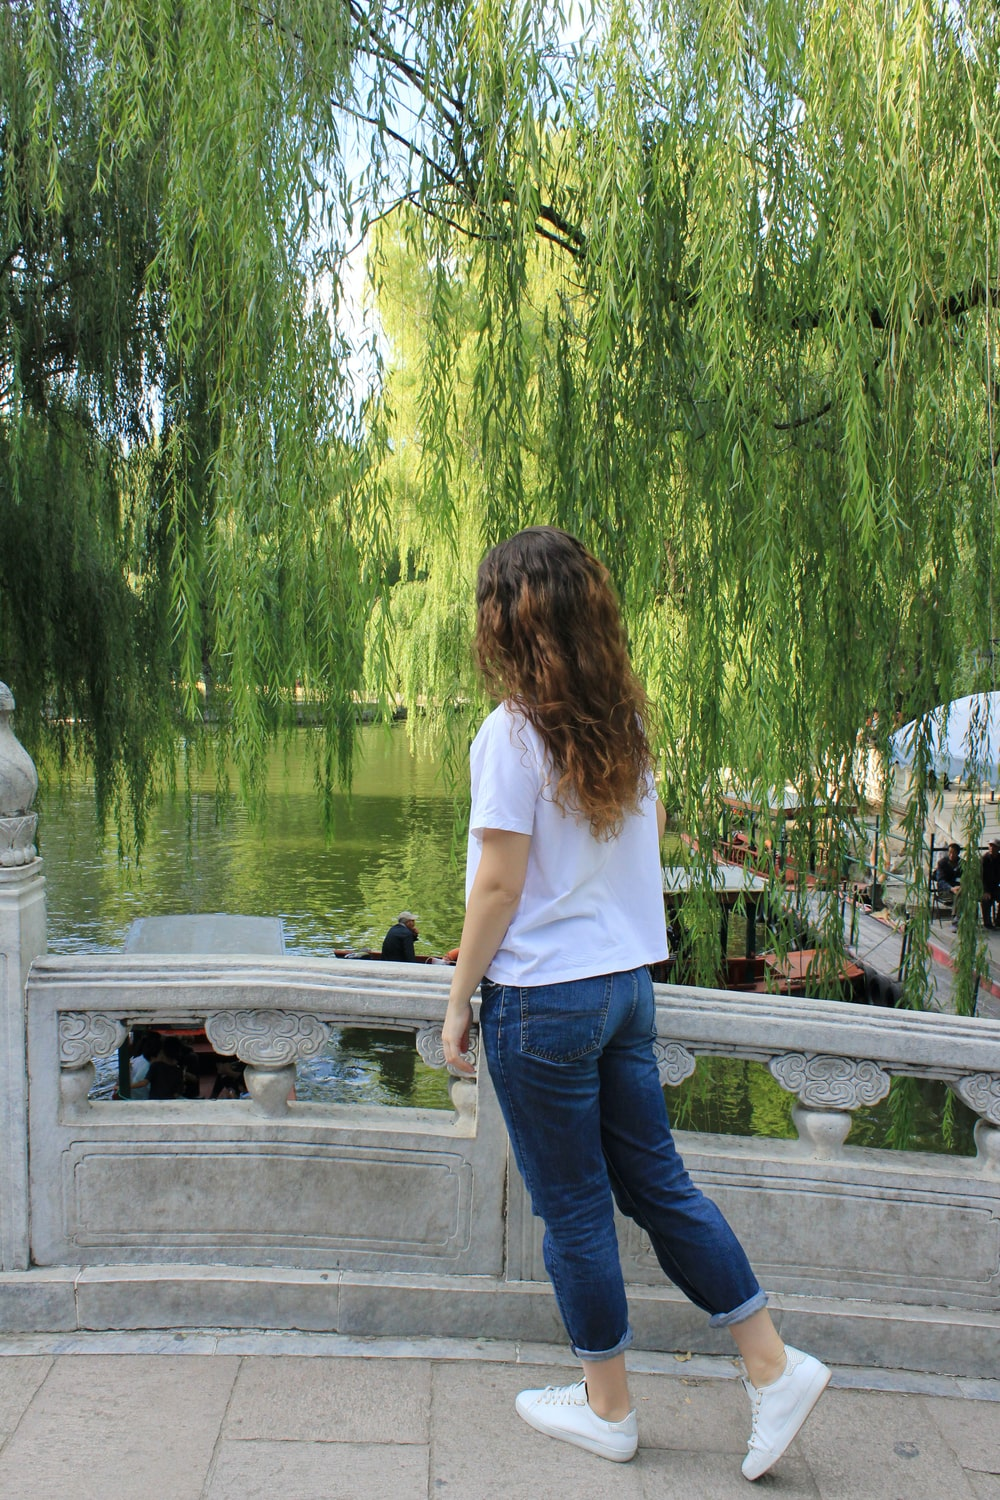 woman in white t-shirt and blue denim jeans standing on gray concrete dock during daytime